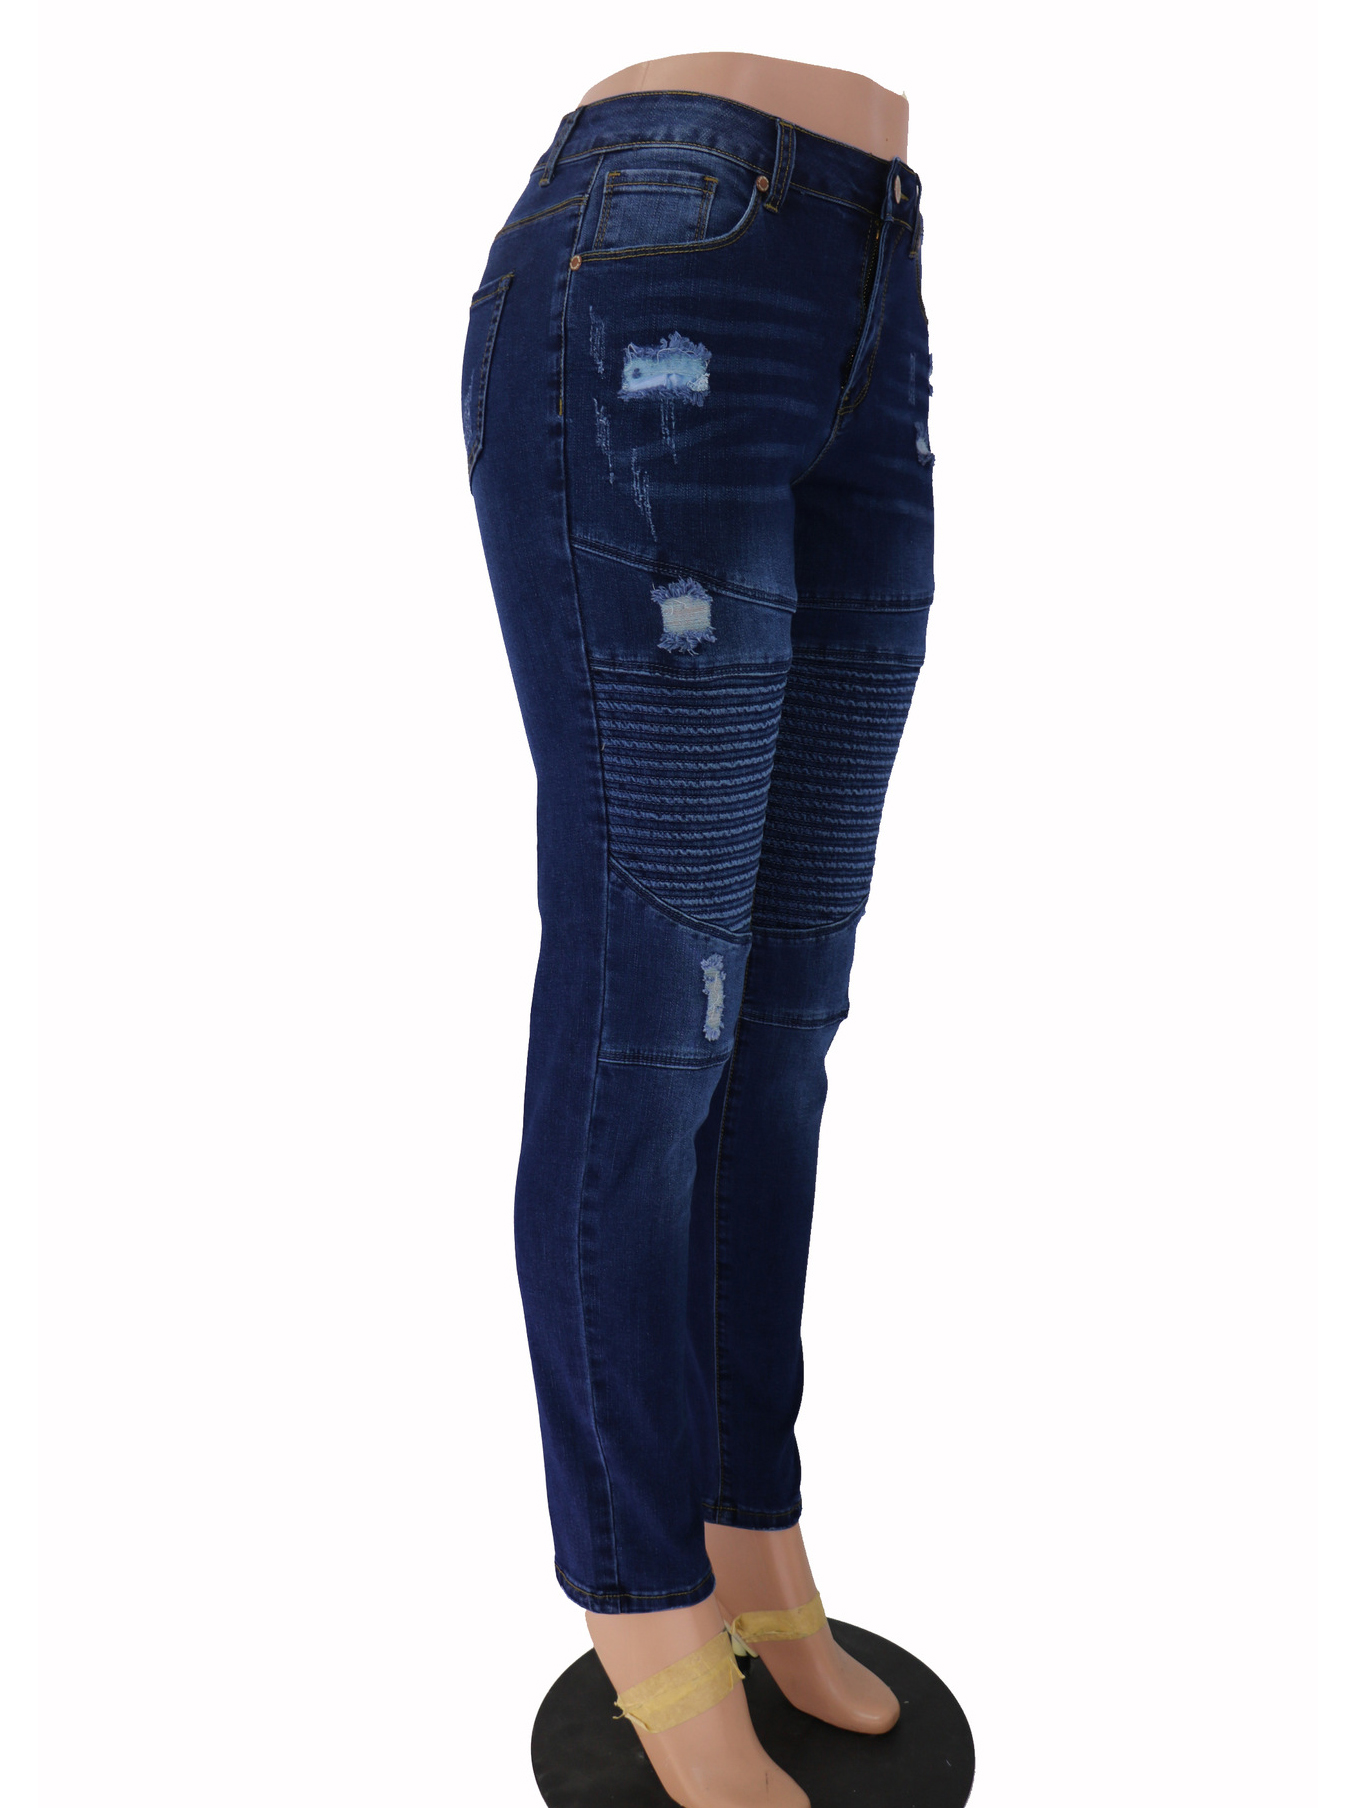 Versatile Simple Style Deep Blue Ripped Skinny Jeans - wholesale jeans suppliers, Custom Made ...